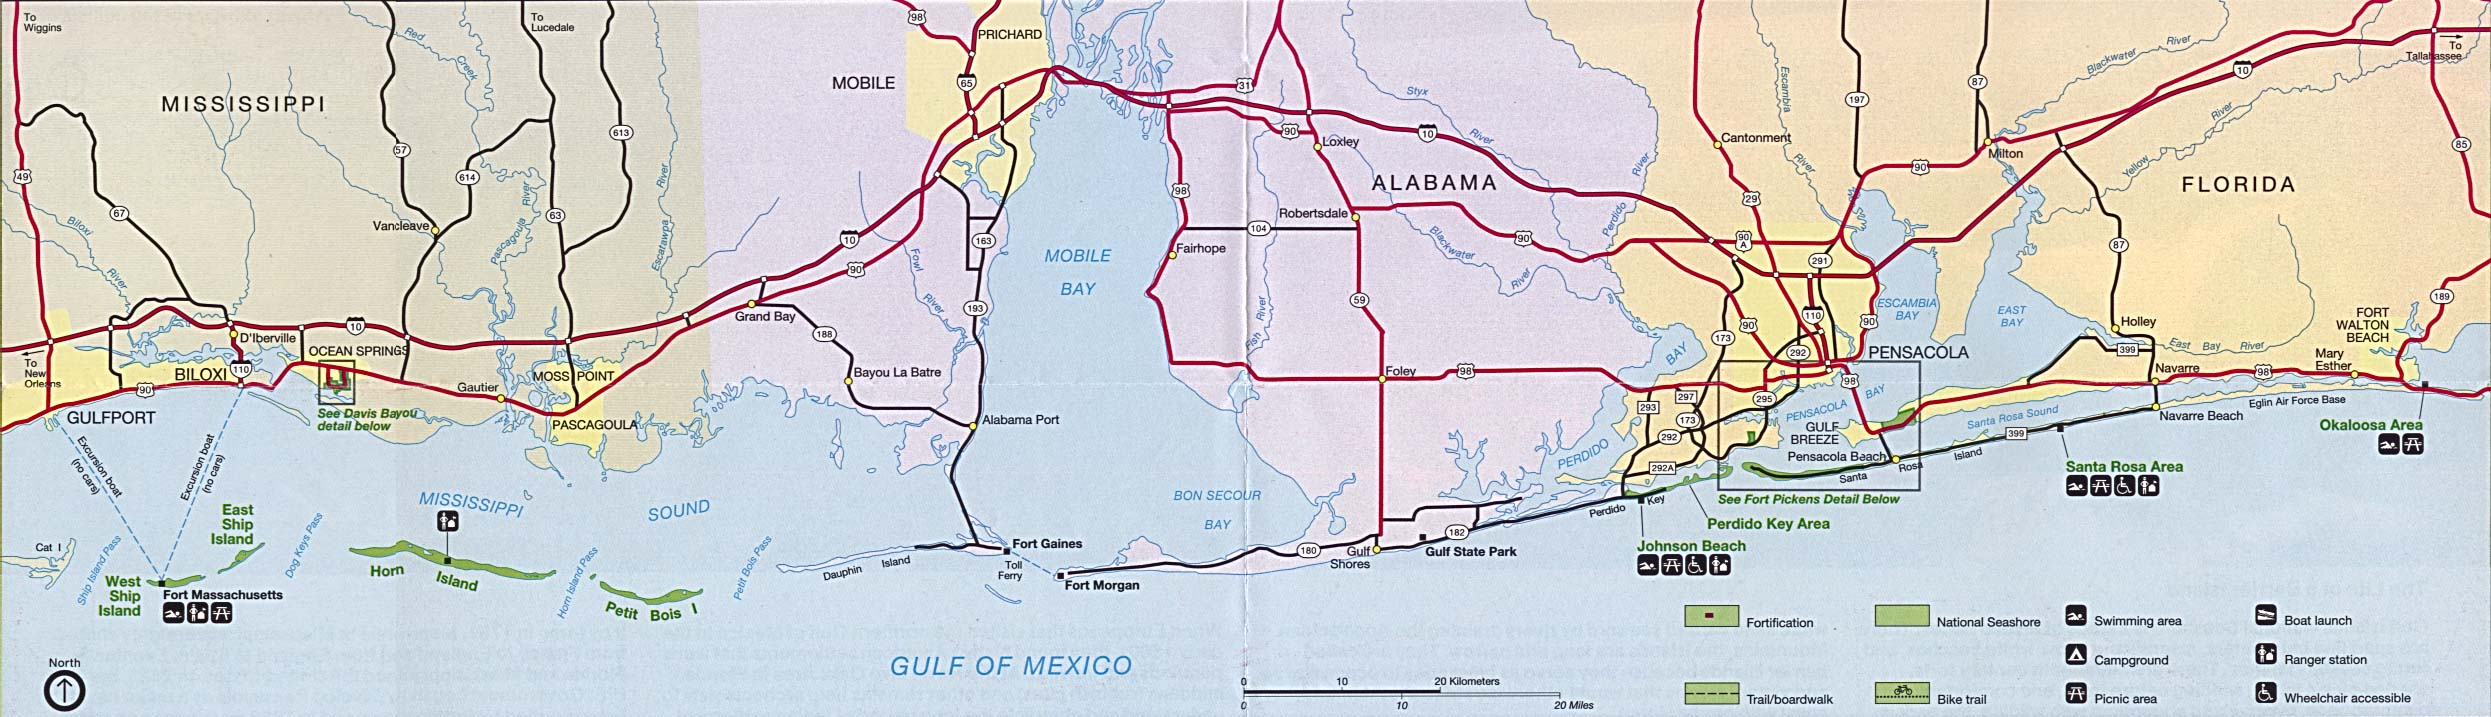 Mississippi Maps - Perry-Castañeda Map Collection - Ut Library Online - Mississippi Florida Map